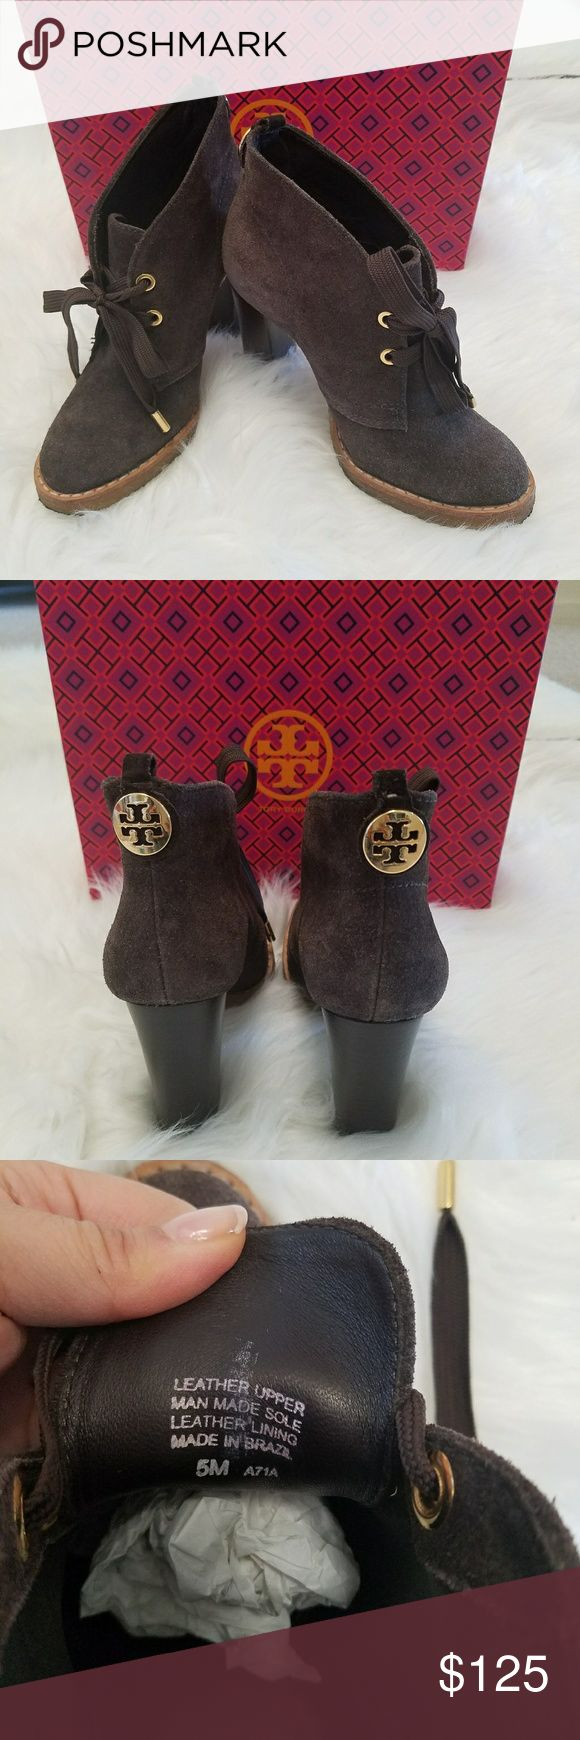 Tory Burch Chocolate brown suede lace ankle boots Authentic. Excellent condition. Gold toggles on the tips of the lace up features. Soft and comfy Wore once. Heels are 4 in high Tory Burch Shoes